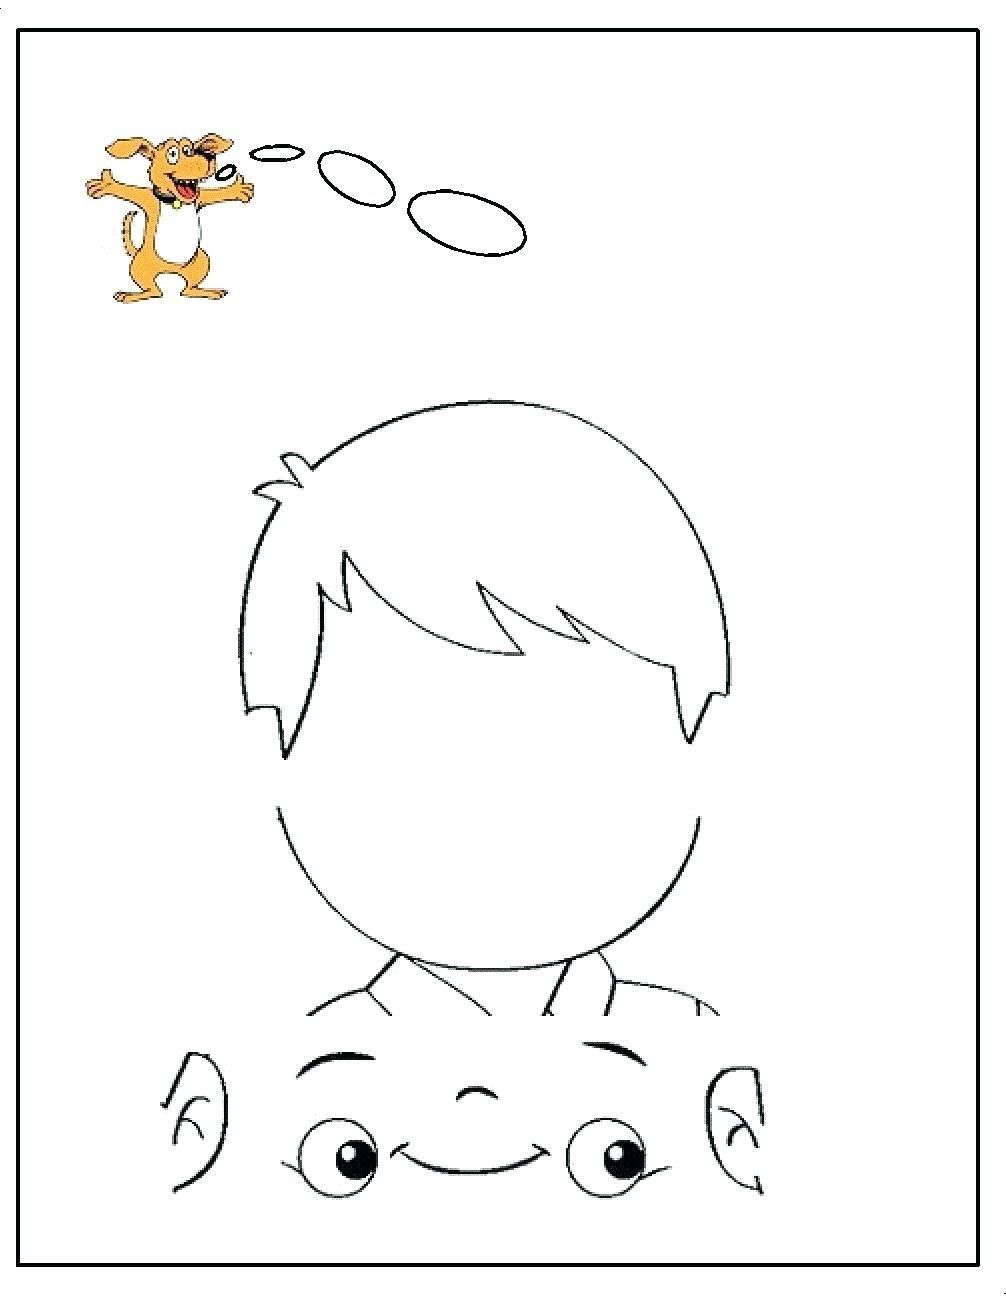 Drawing Worksheets for Kids Reading Worksheets Will Make